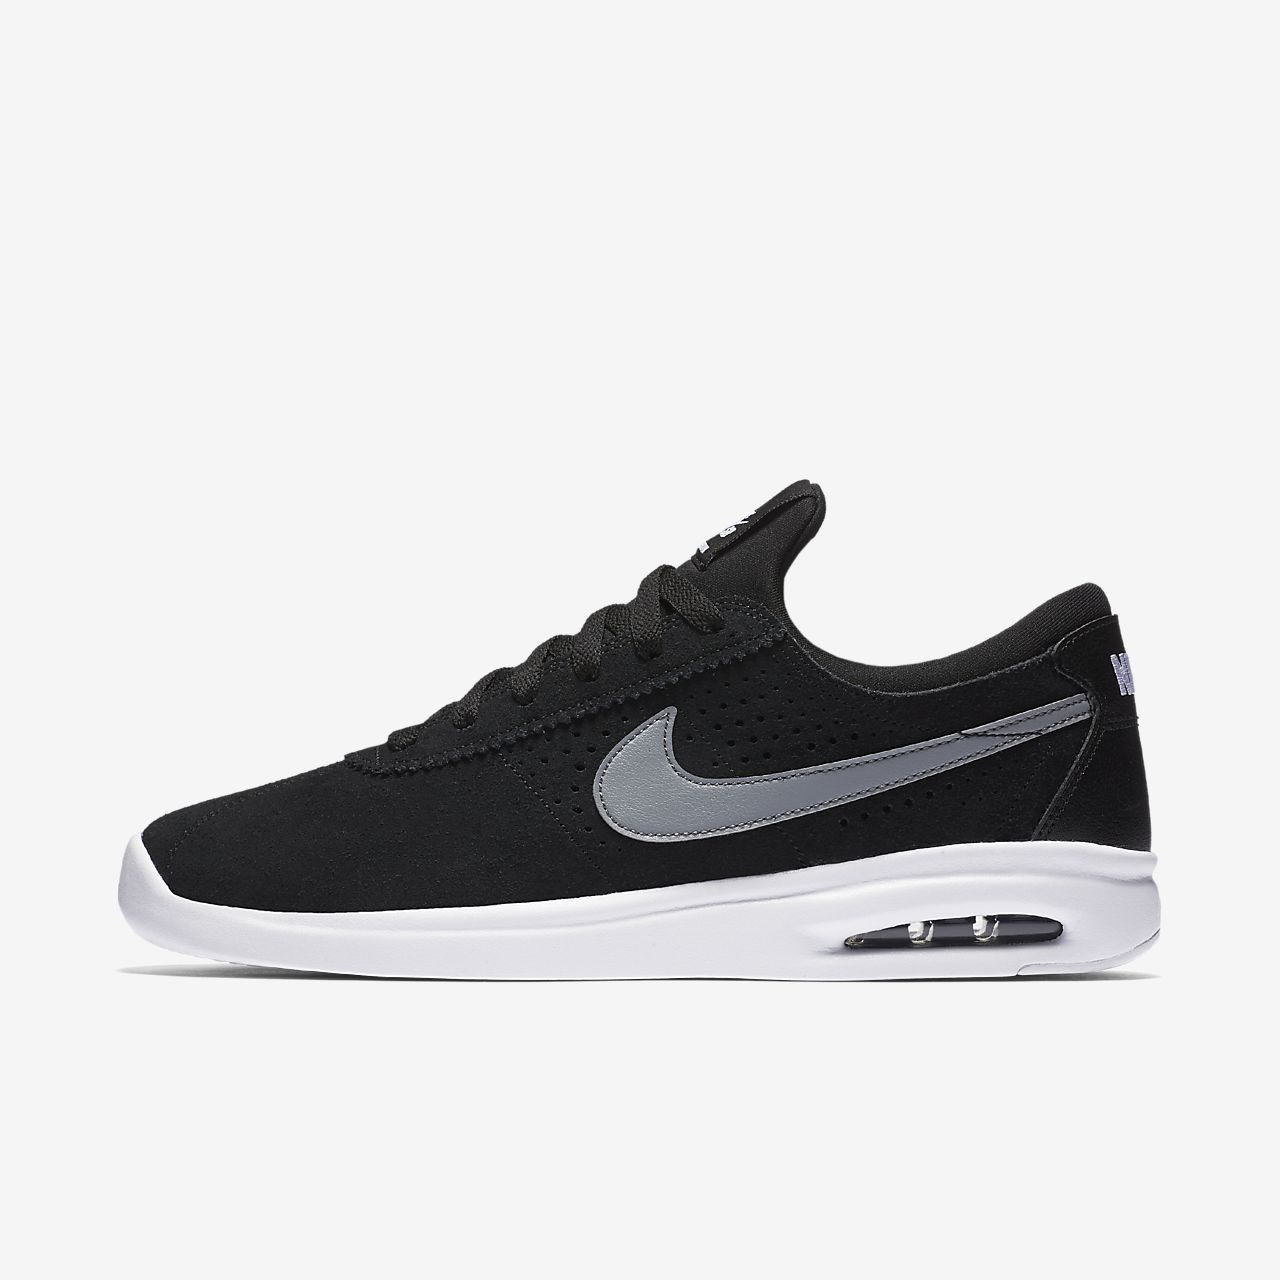 separation shoes 2da73 452a4 Nike SB Air Max Bruin Vapor